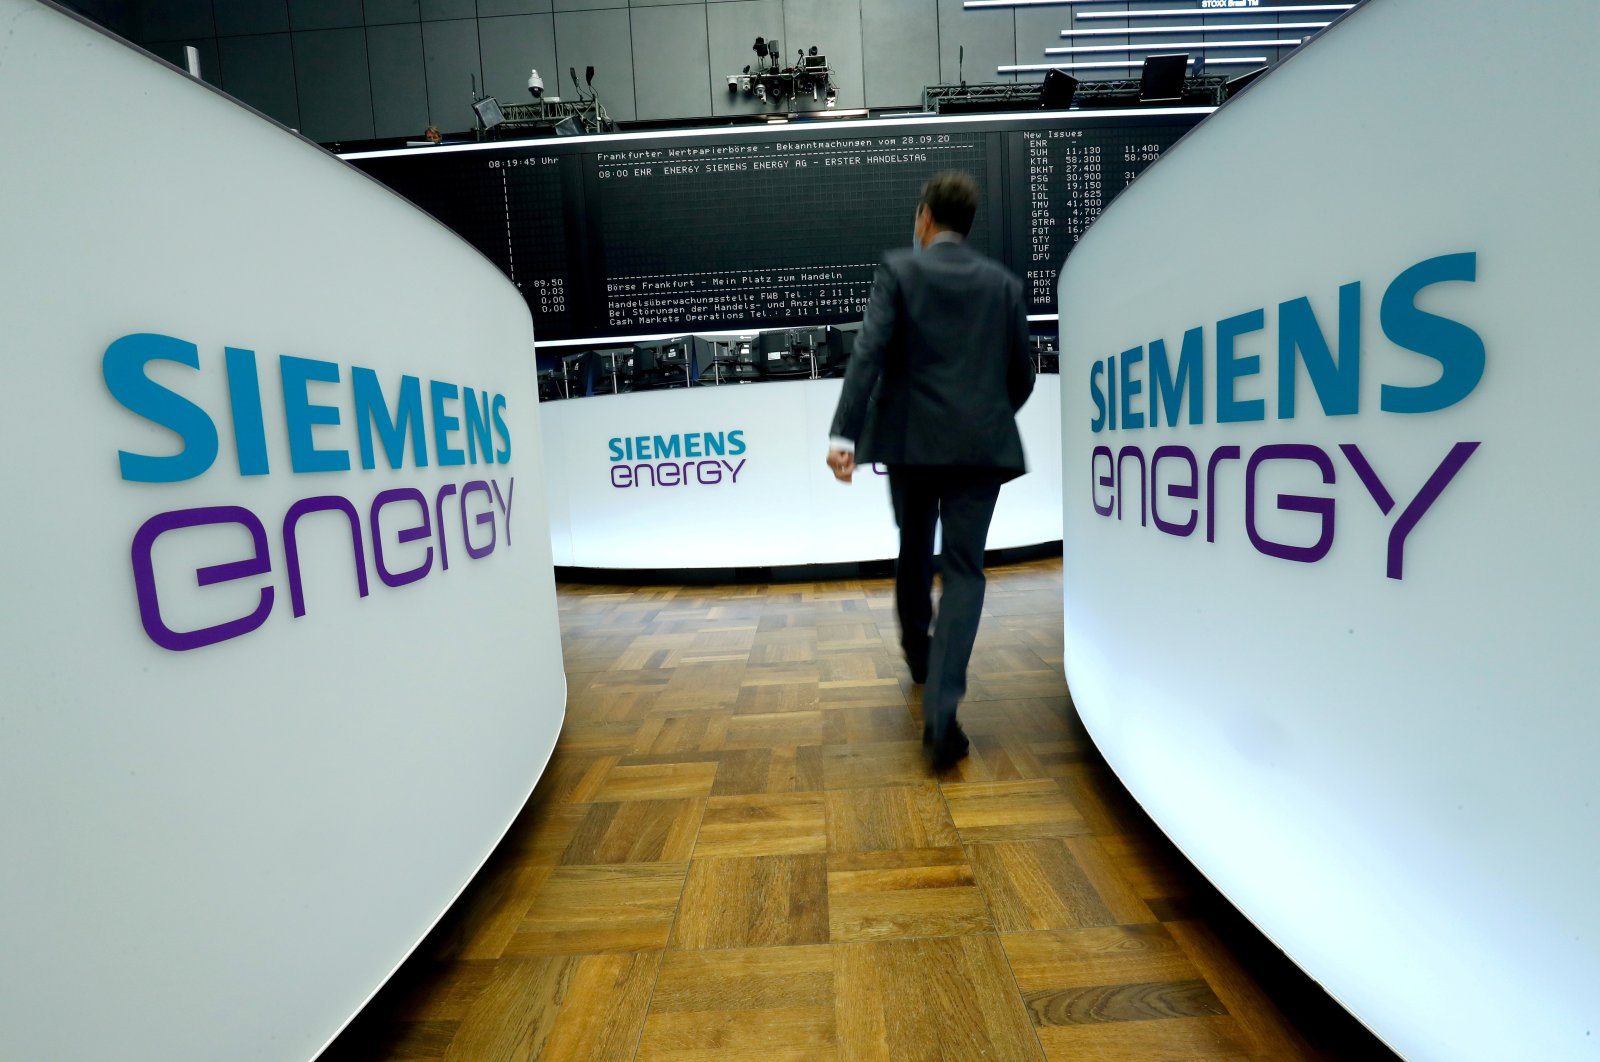 A trader walks next to Siemens Energy AG logos during Siemens Energy's initial public offering (IPO) at the Frankfurt Stock Exchange in Frankfurt, Germany, Sept. 28, 2020.  (Reuters Photo)